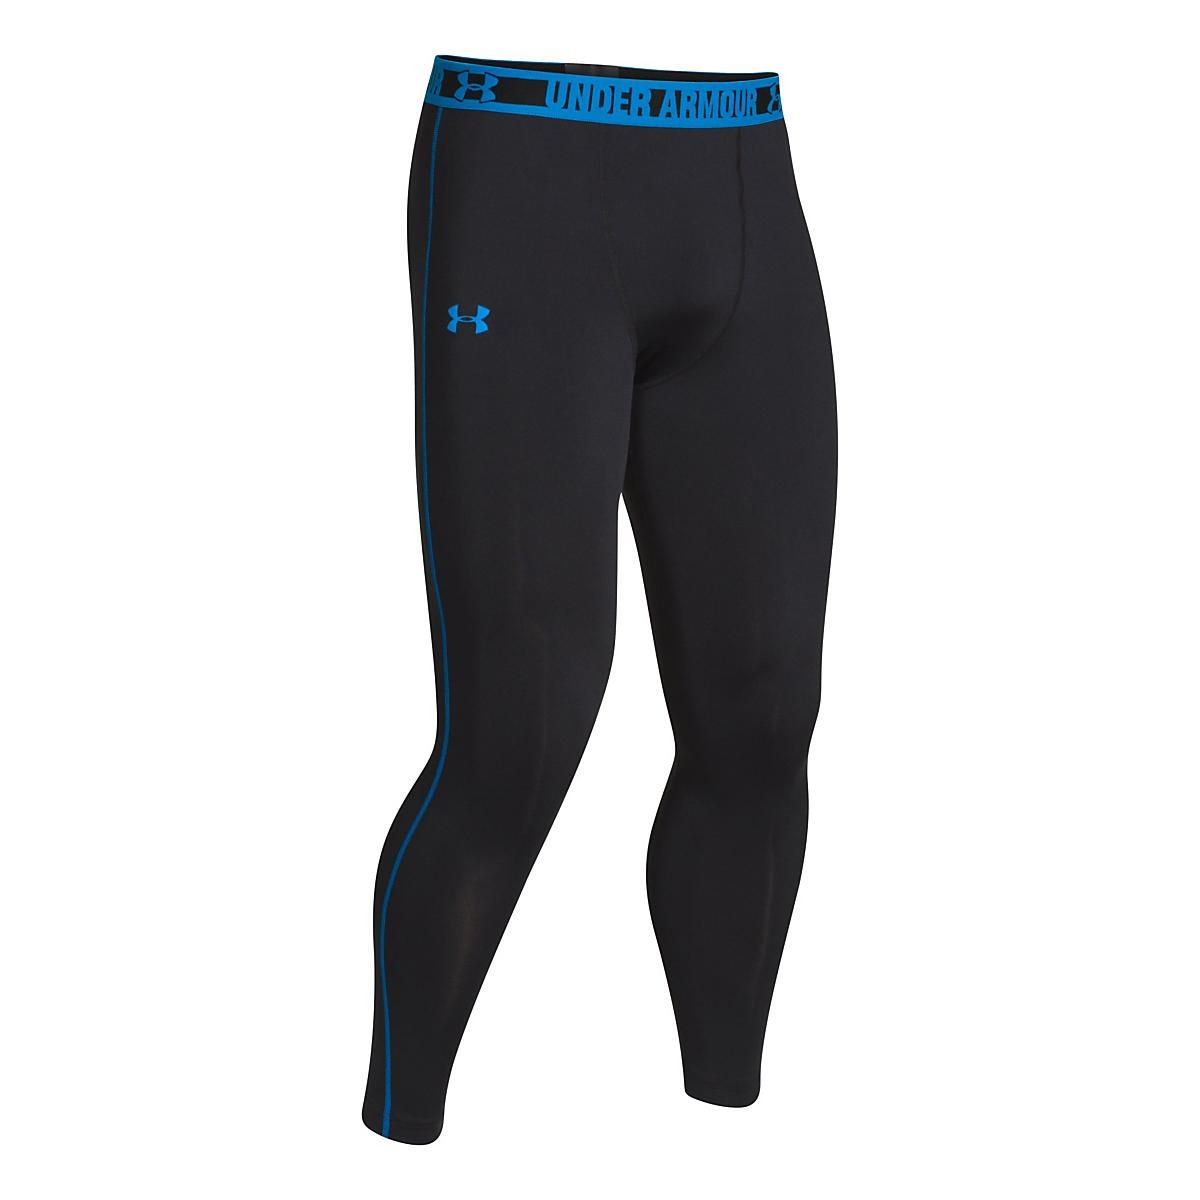 Men's Under Armour�HeatGear Sonic Compression Leggings